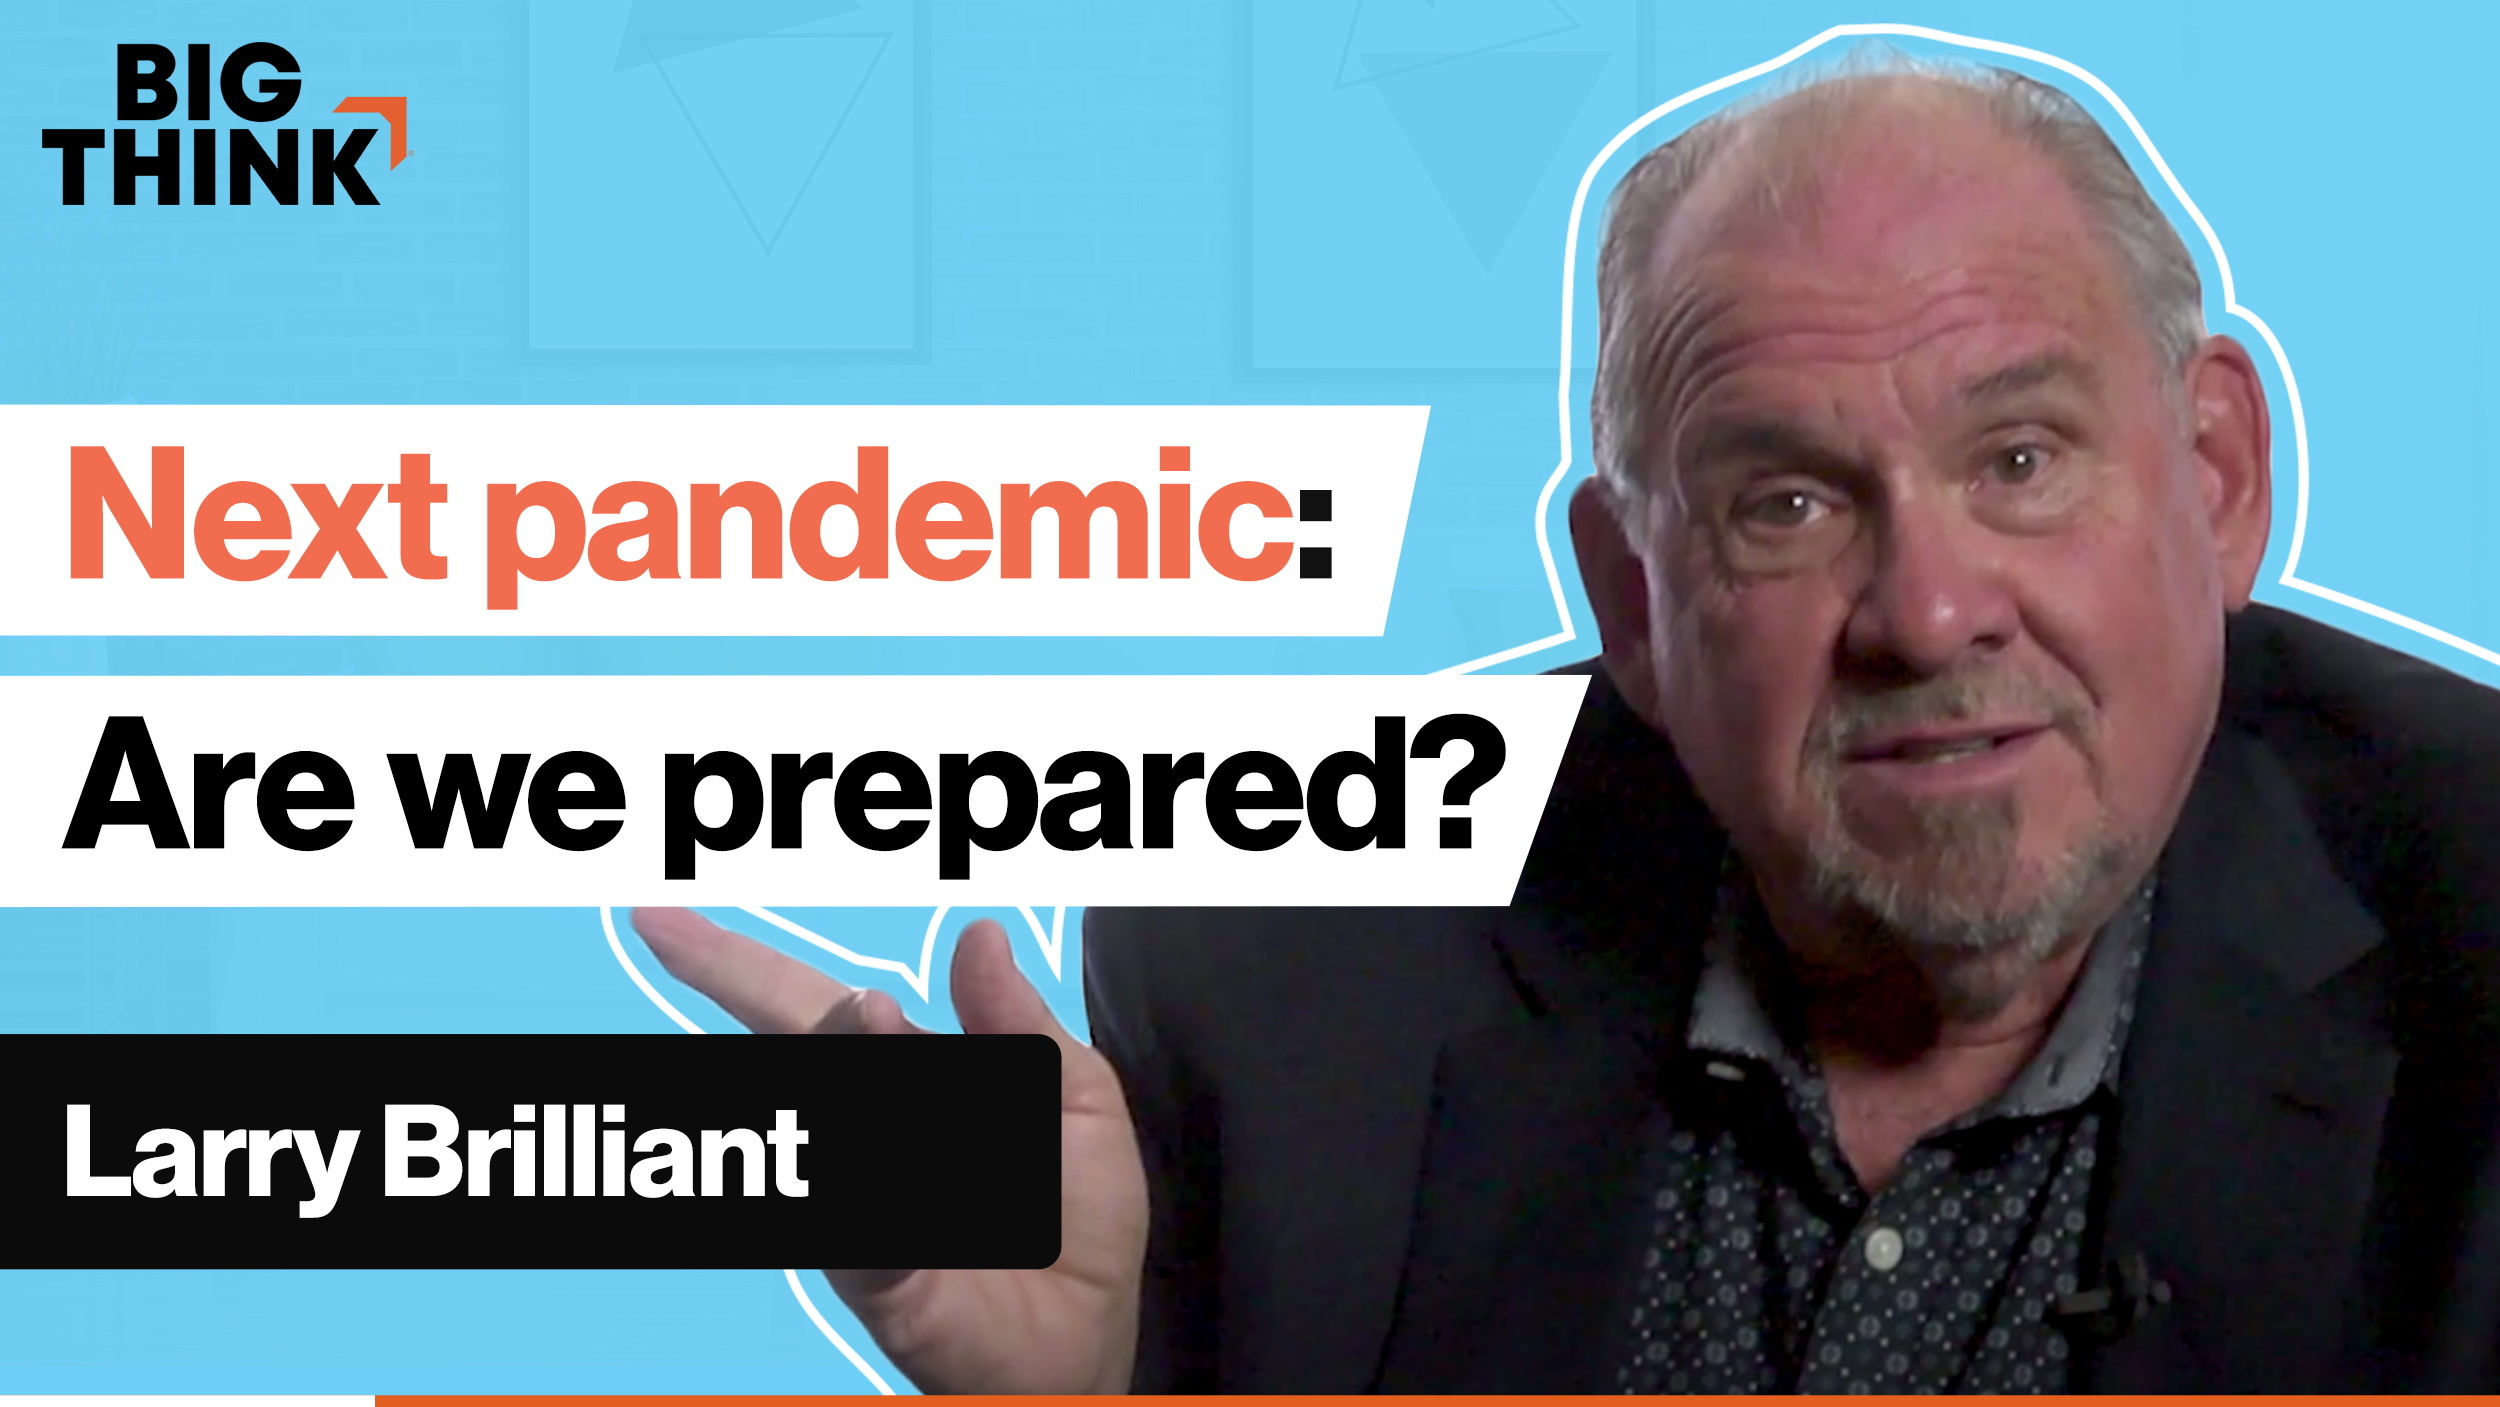 The next pandemic is inevitable. Are we prepared?